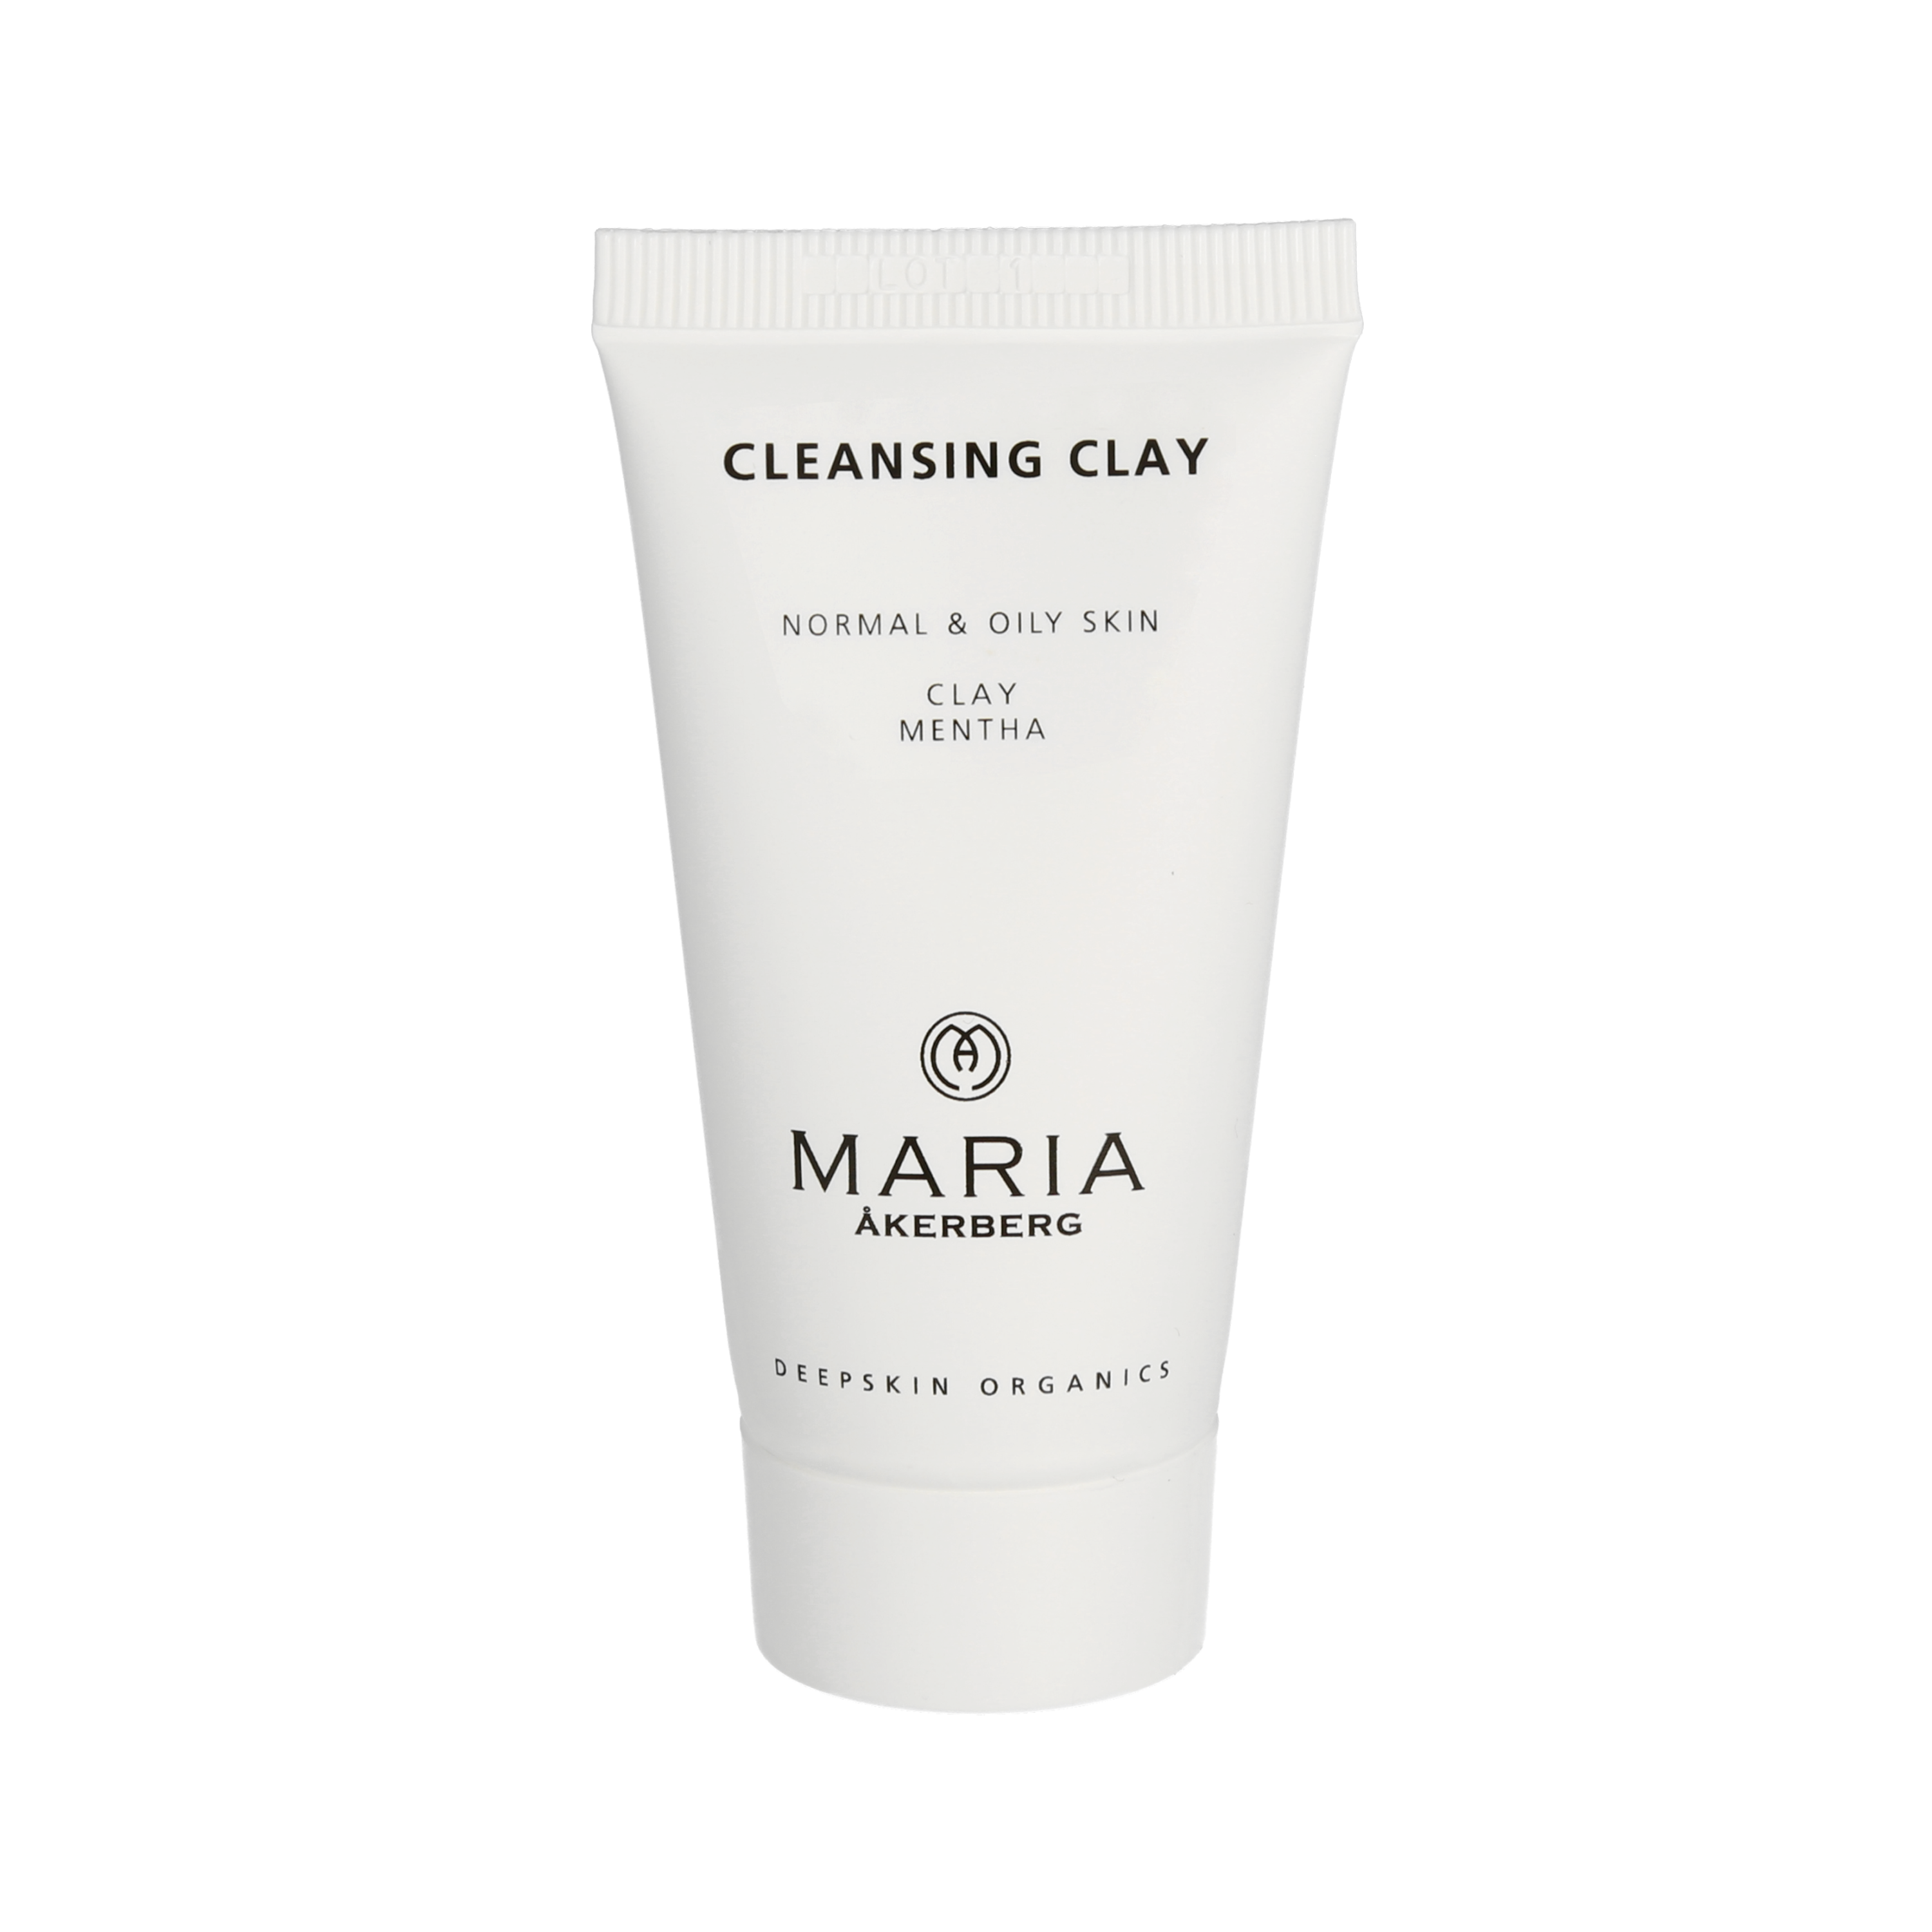 Cleansing Cley